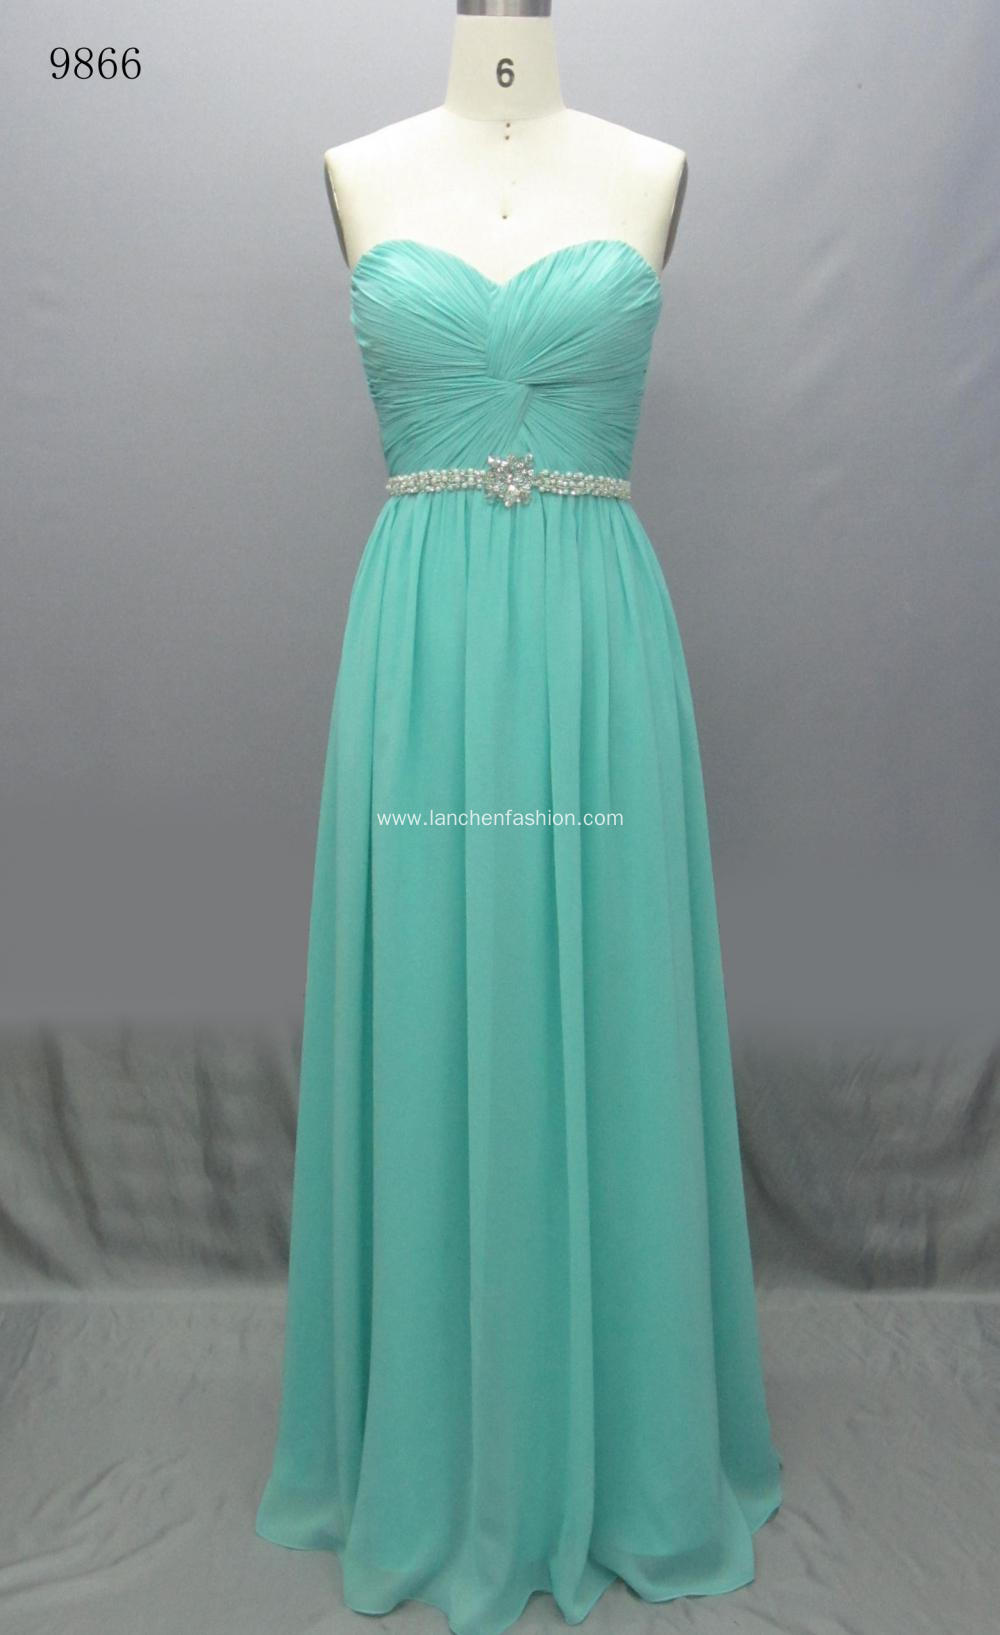 Vintage Elegant Long Maxi Prom Dress